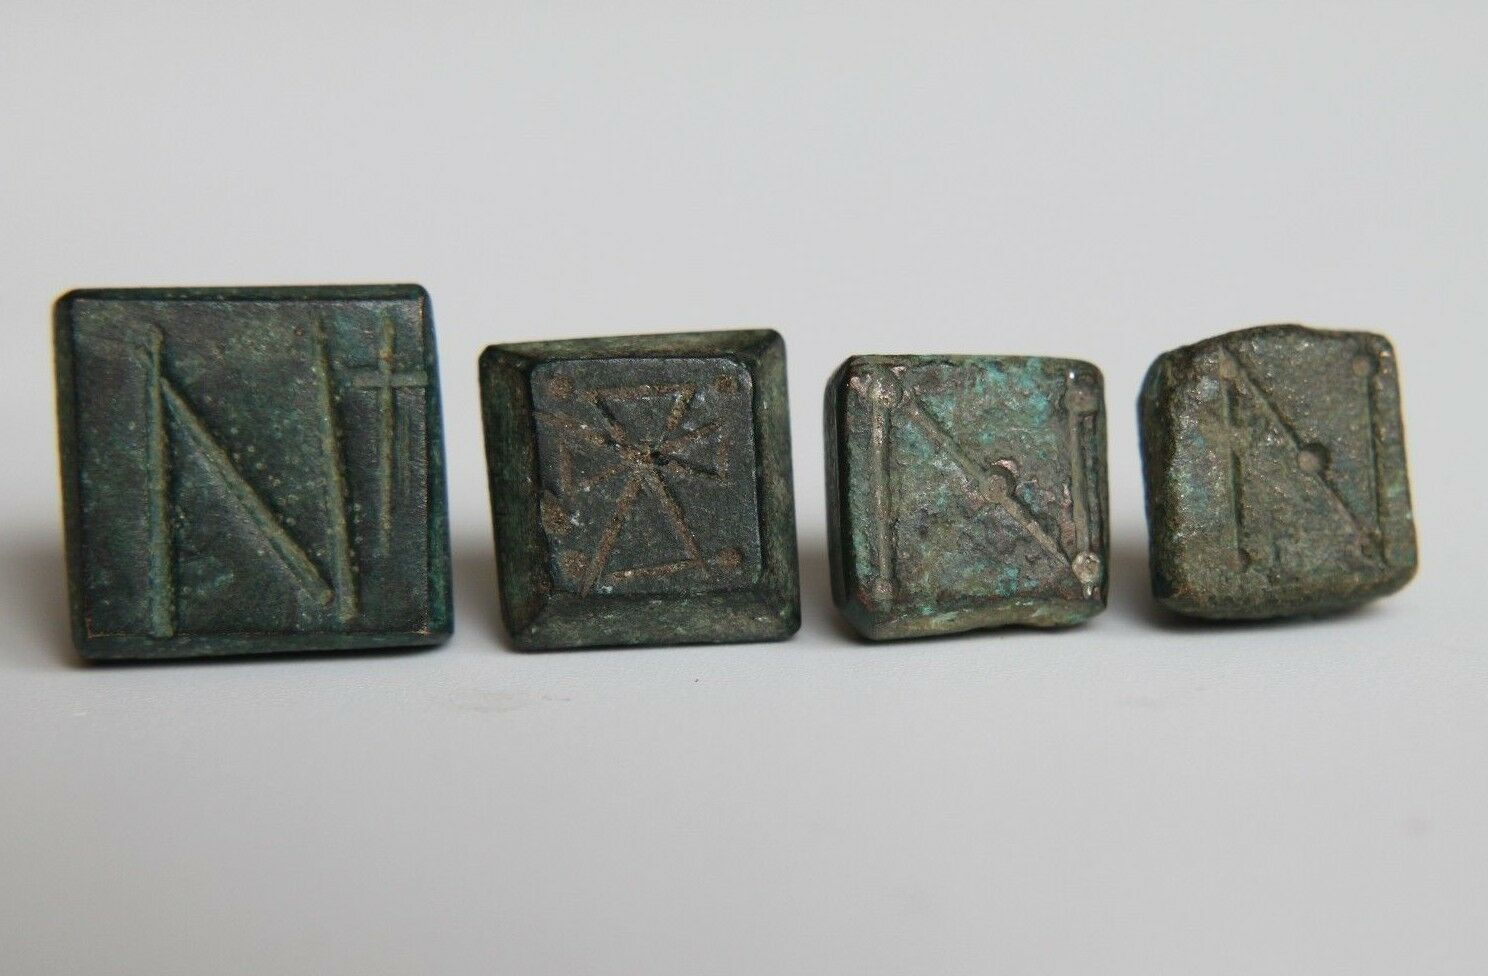 Byzantine Period Groop of 4 Bronze Weights for Scale 500-900 AD